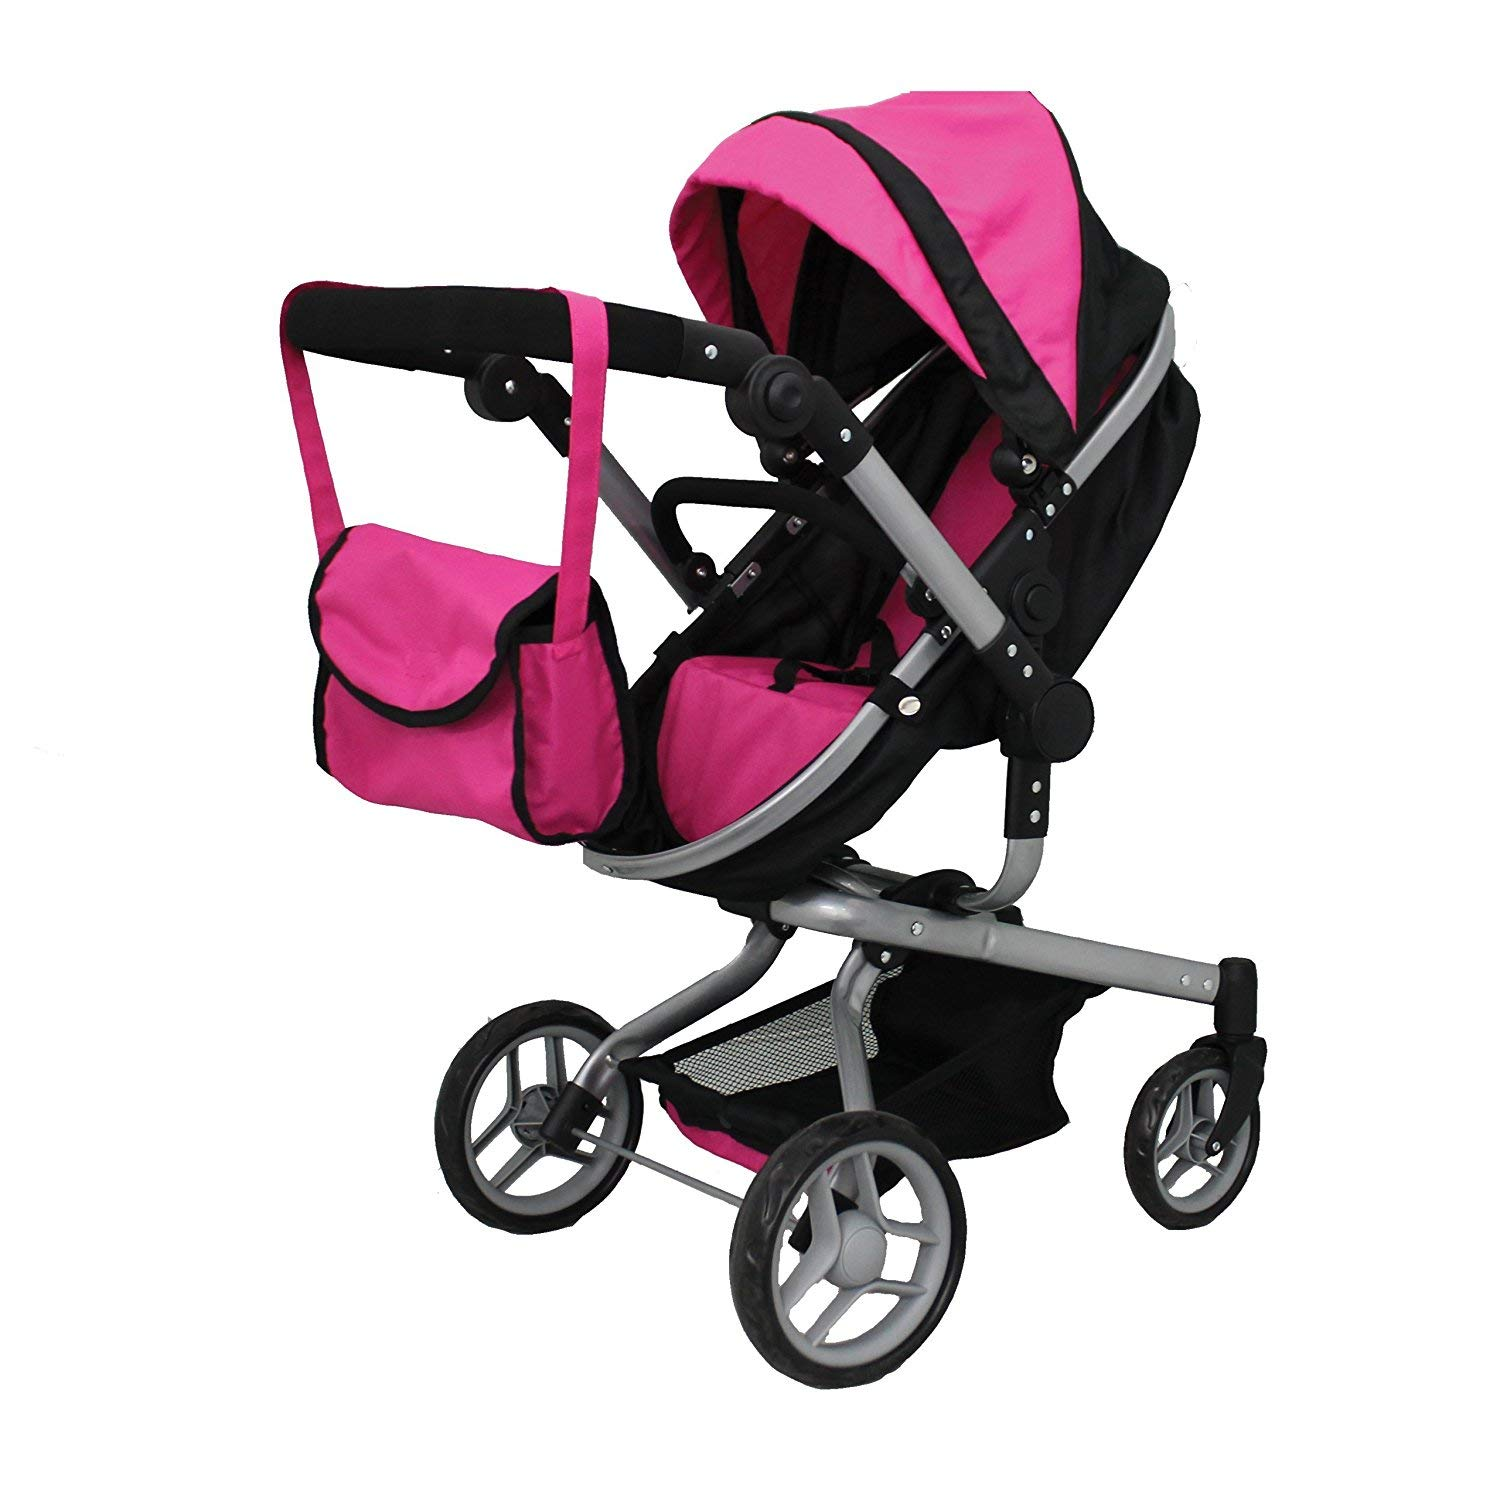 Mommy & me 2 in 1 Deluxe Doll Stroller Extra Tall 32'' HIGH (View All Photos) 9695 by Mommy & Me Doll Collection